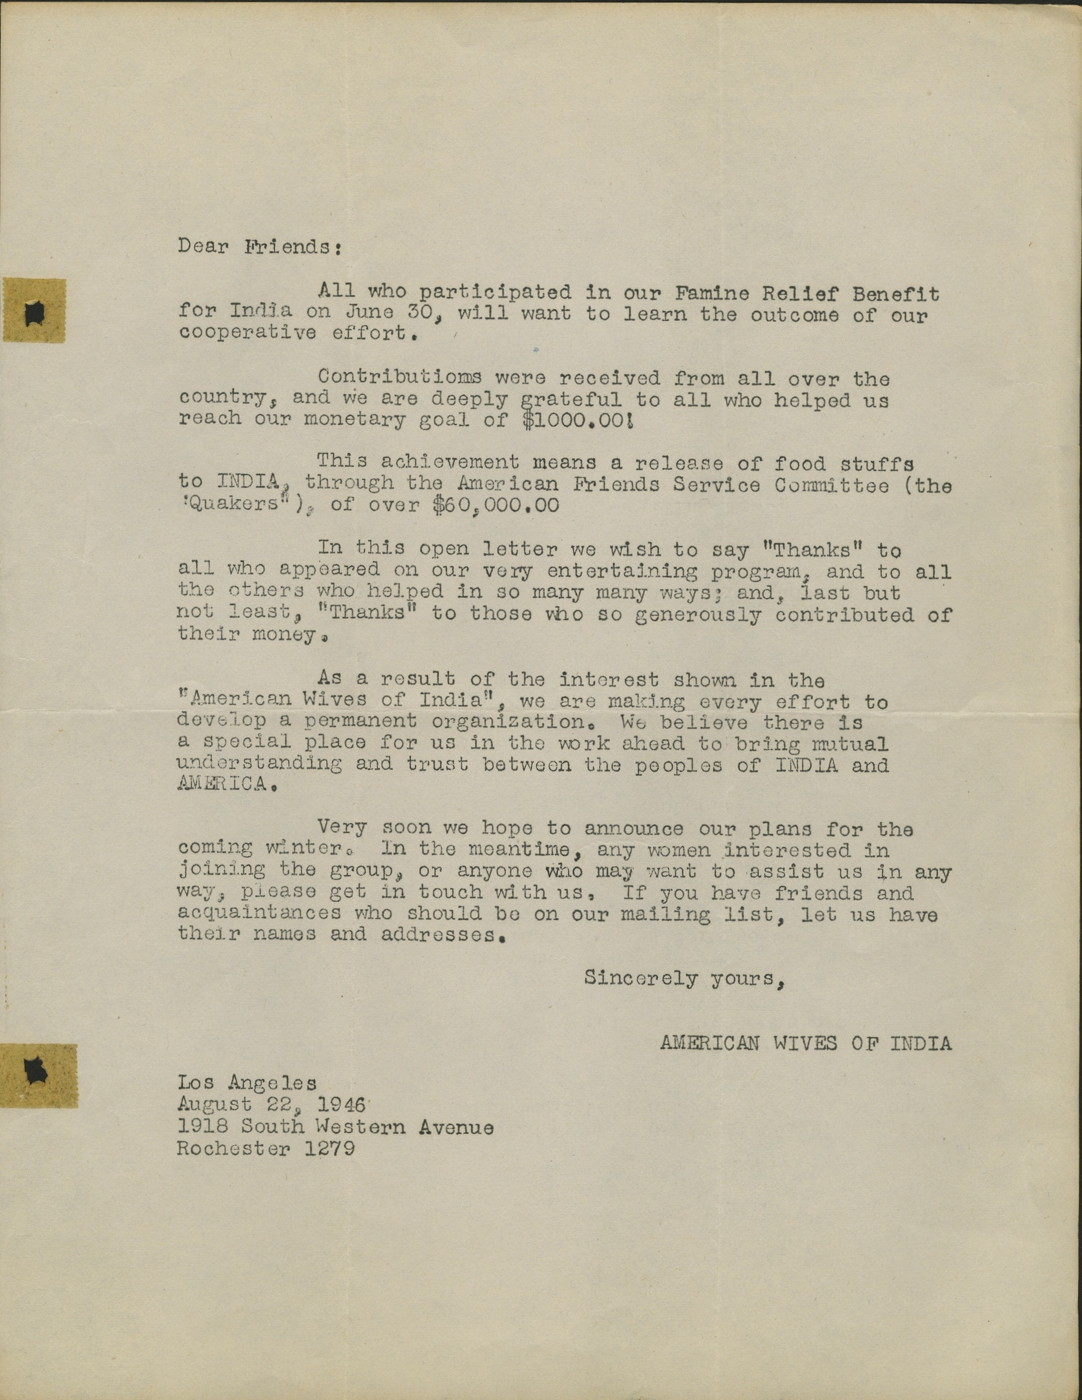 Letter from American Wives of India Regarding Famine Relief